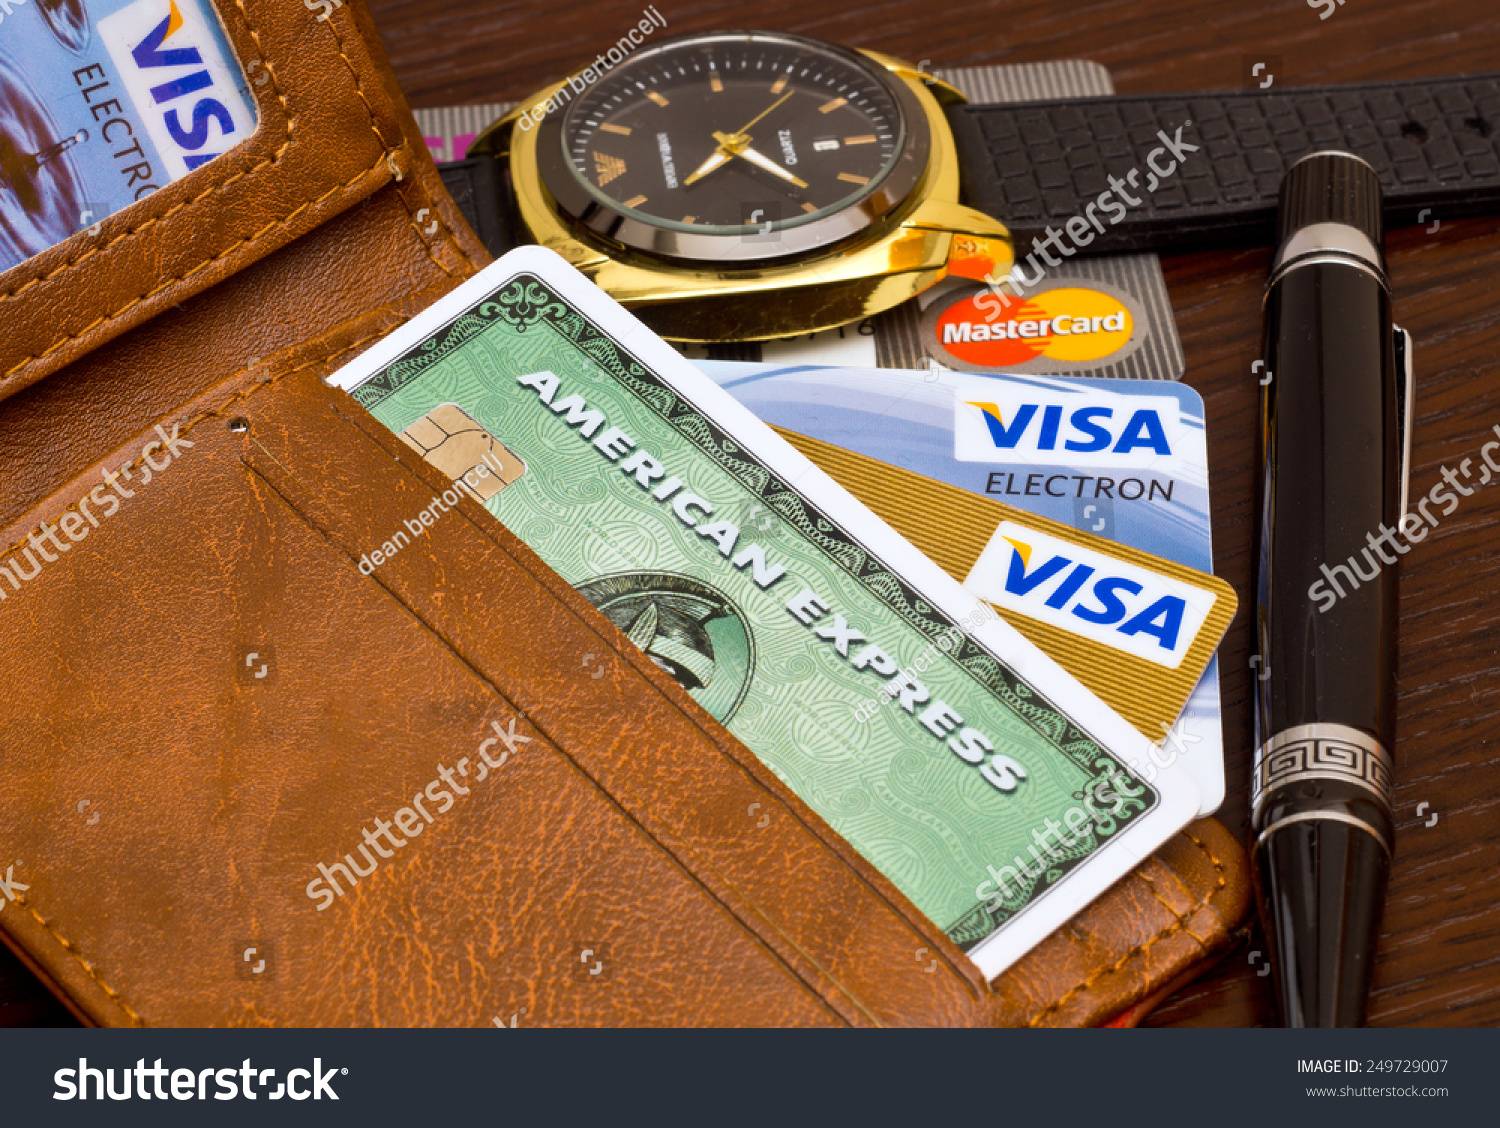 how to close american eagle credit card